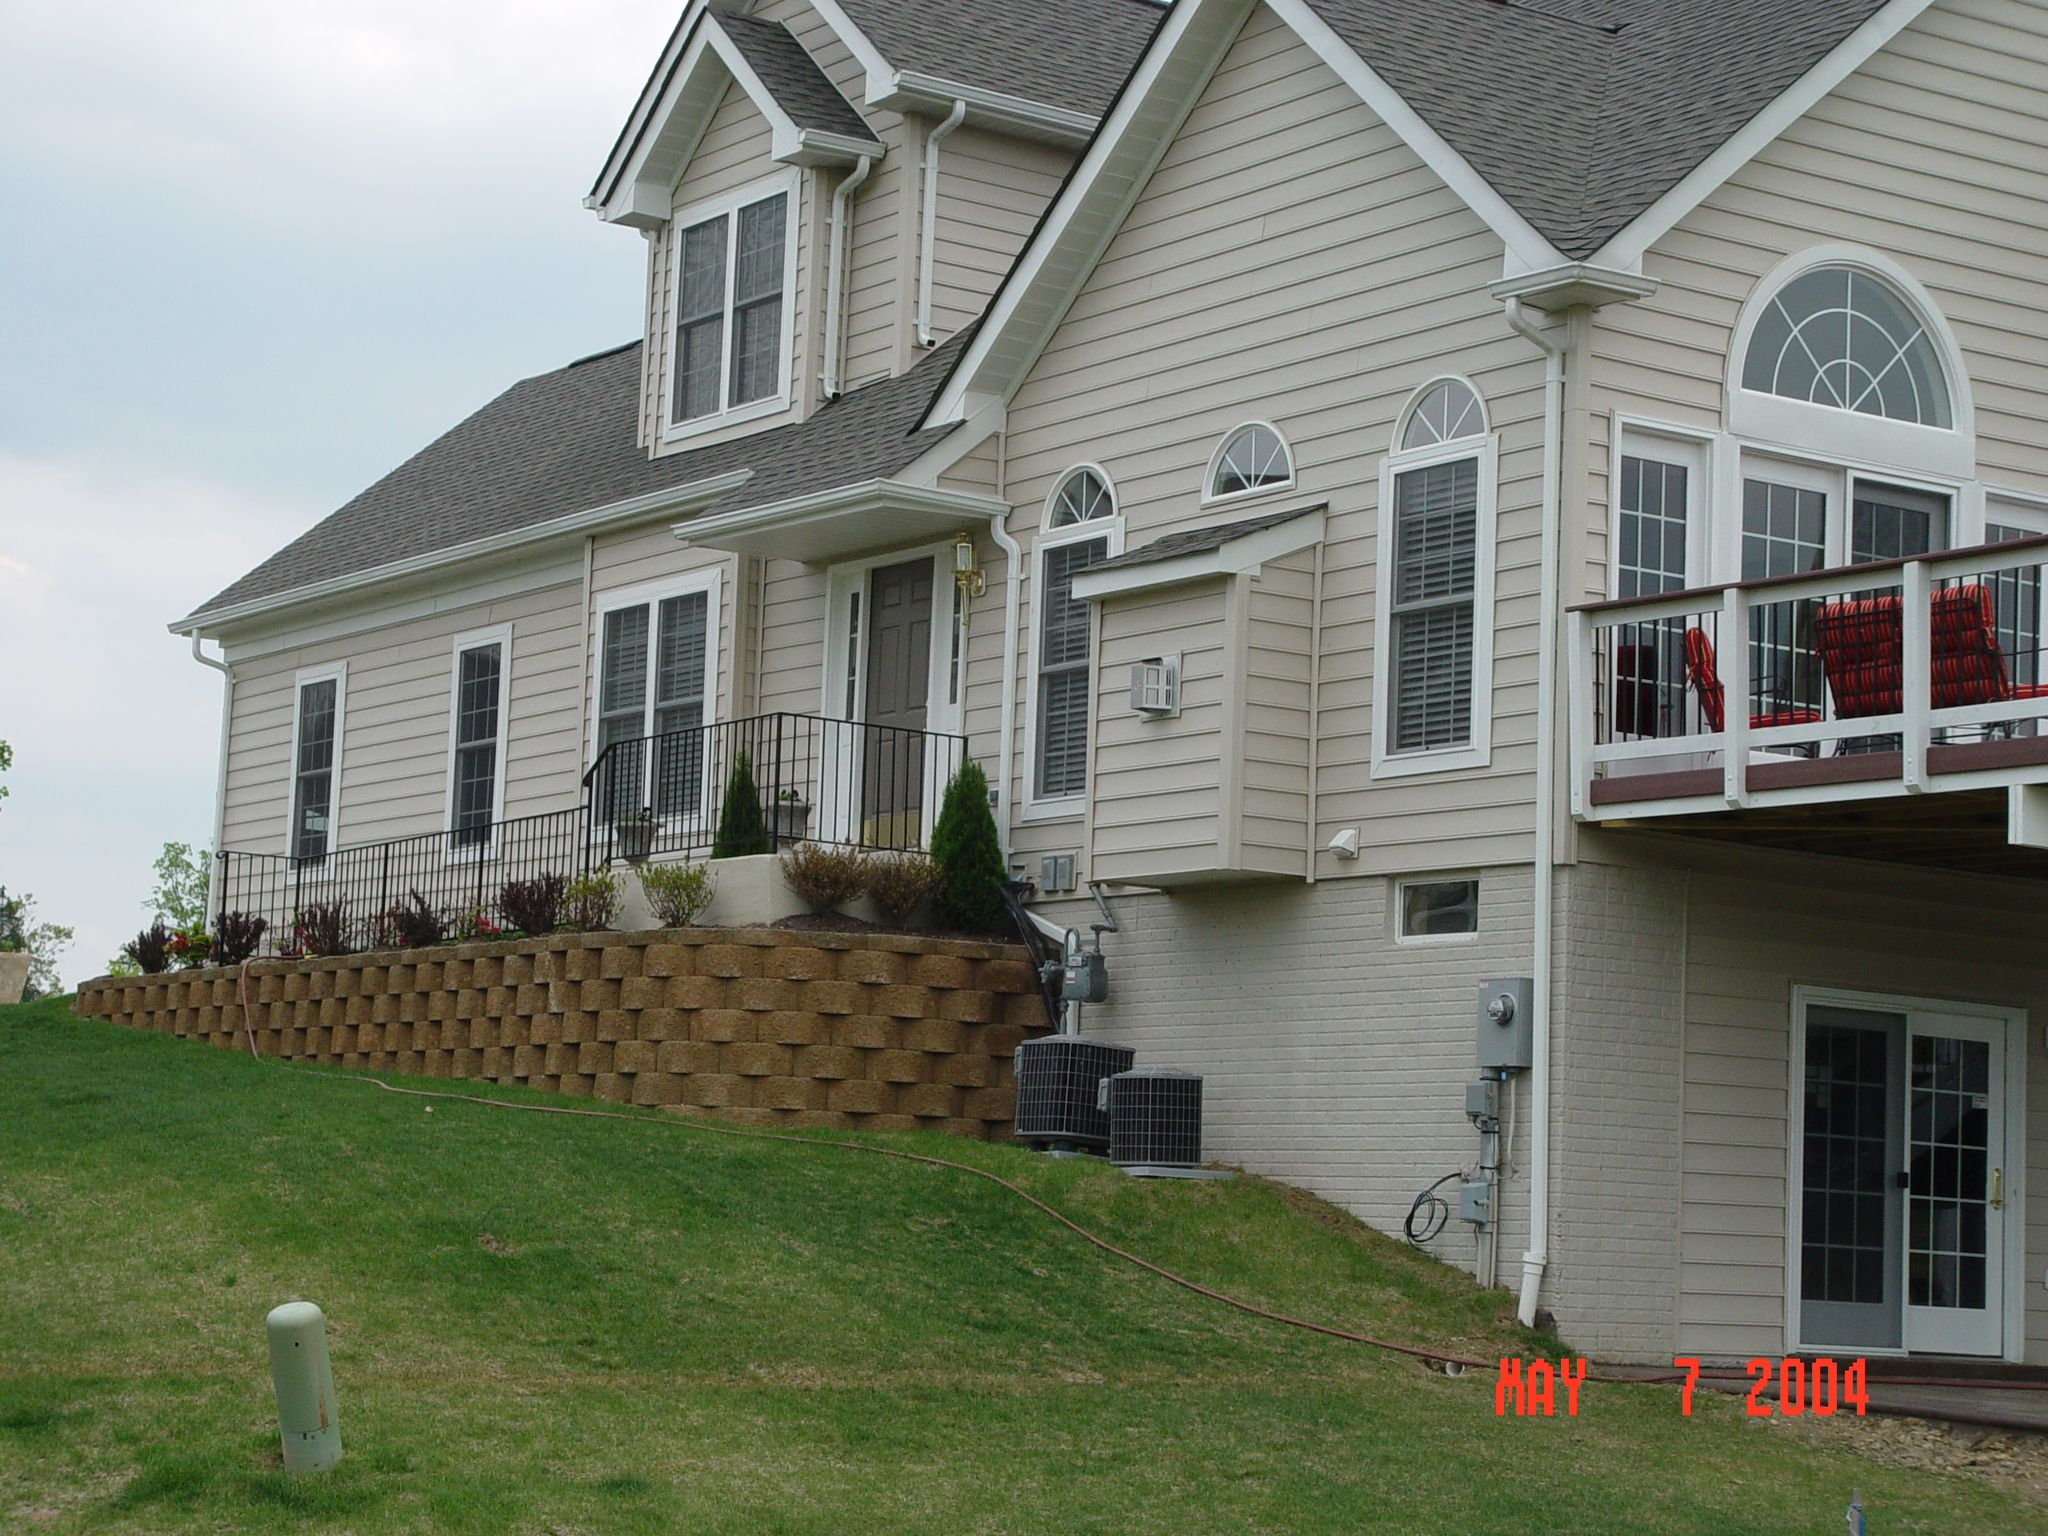 Block retaining wall. Repin if you want to improve your home's exterior | Drainage and Erosion Solutions #landscaping